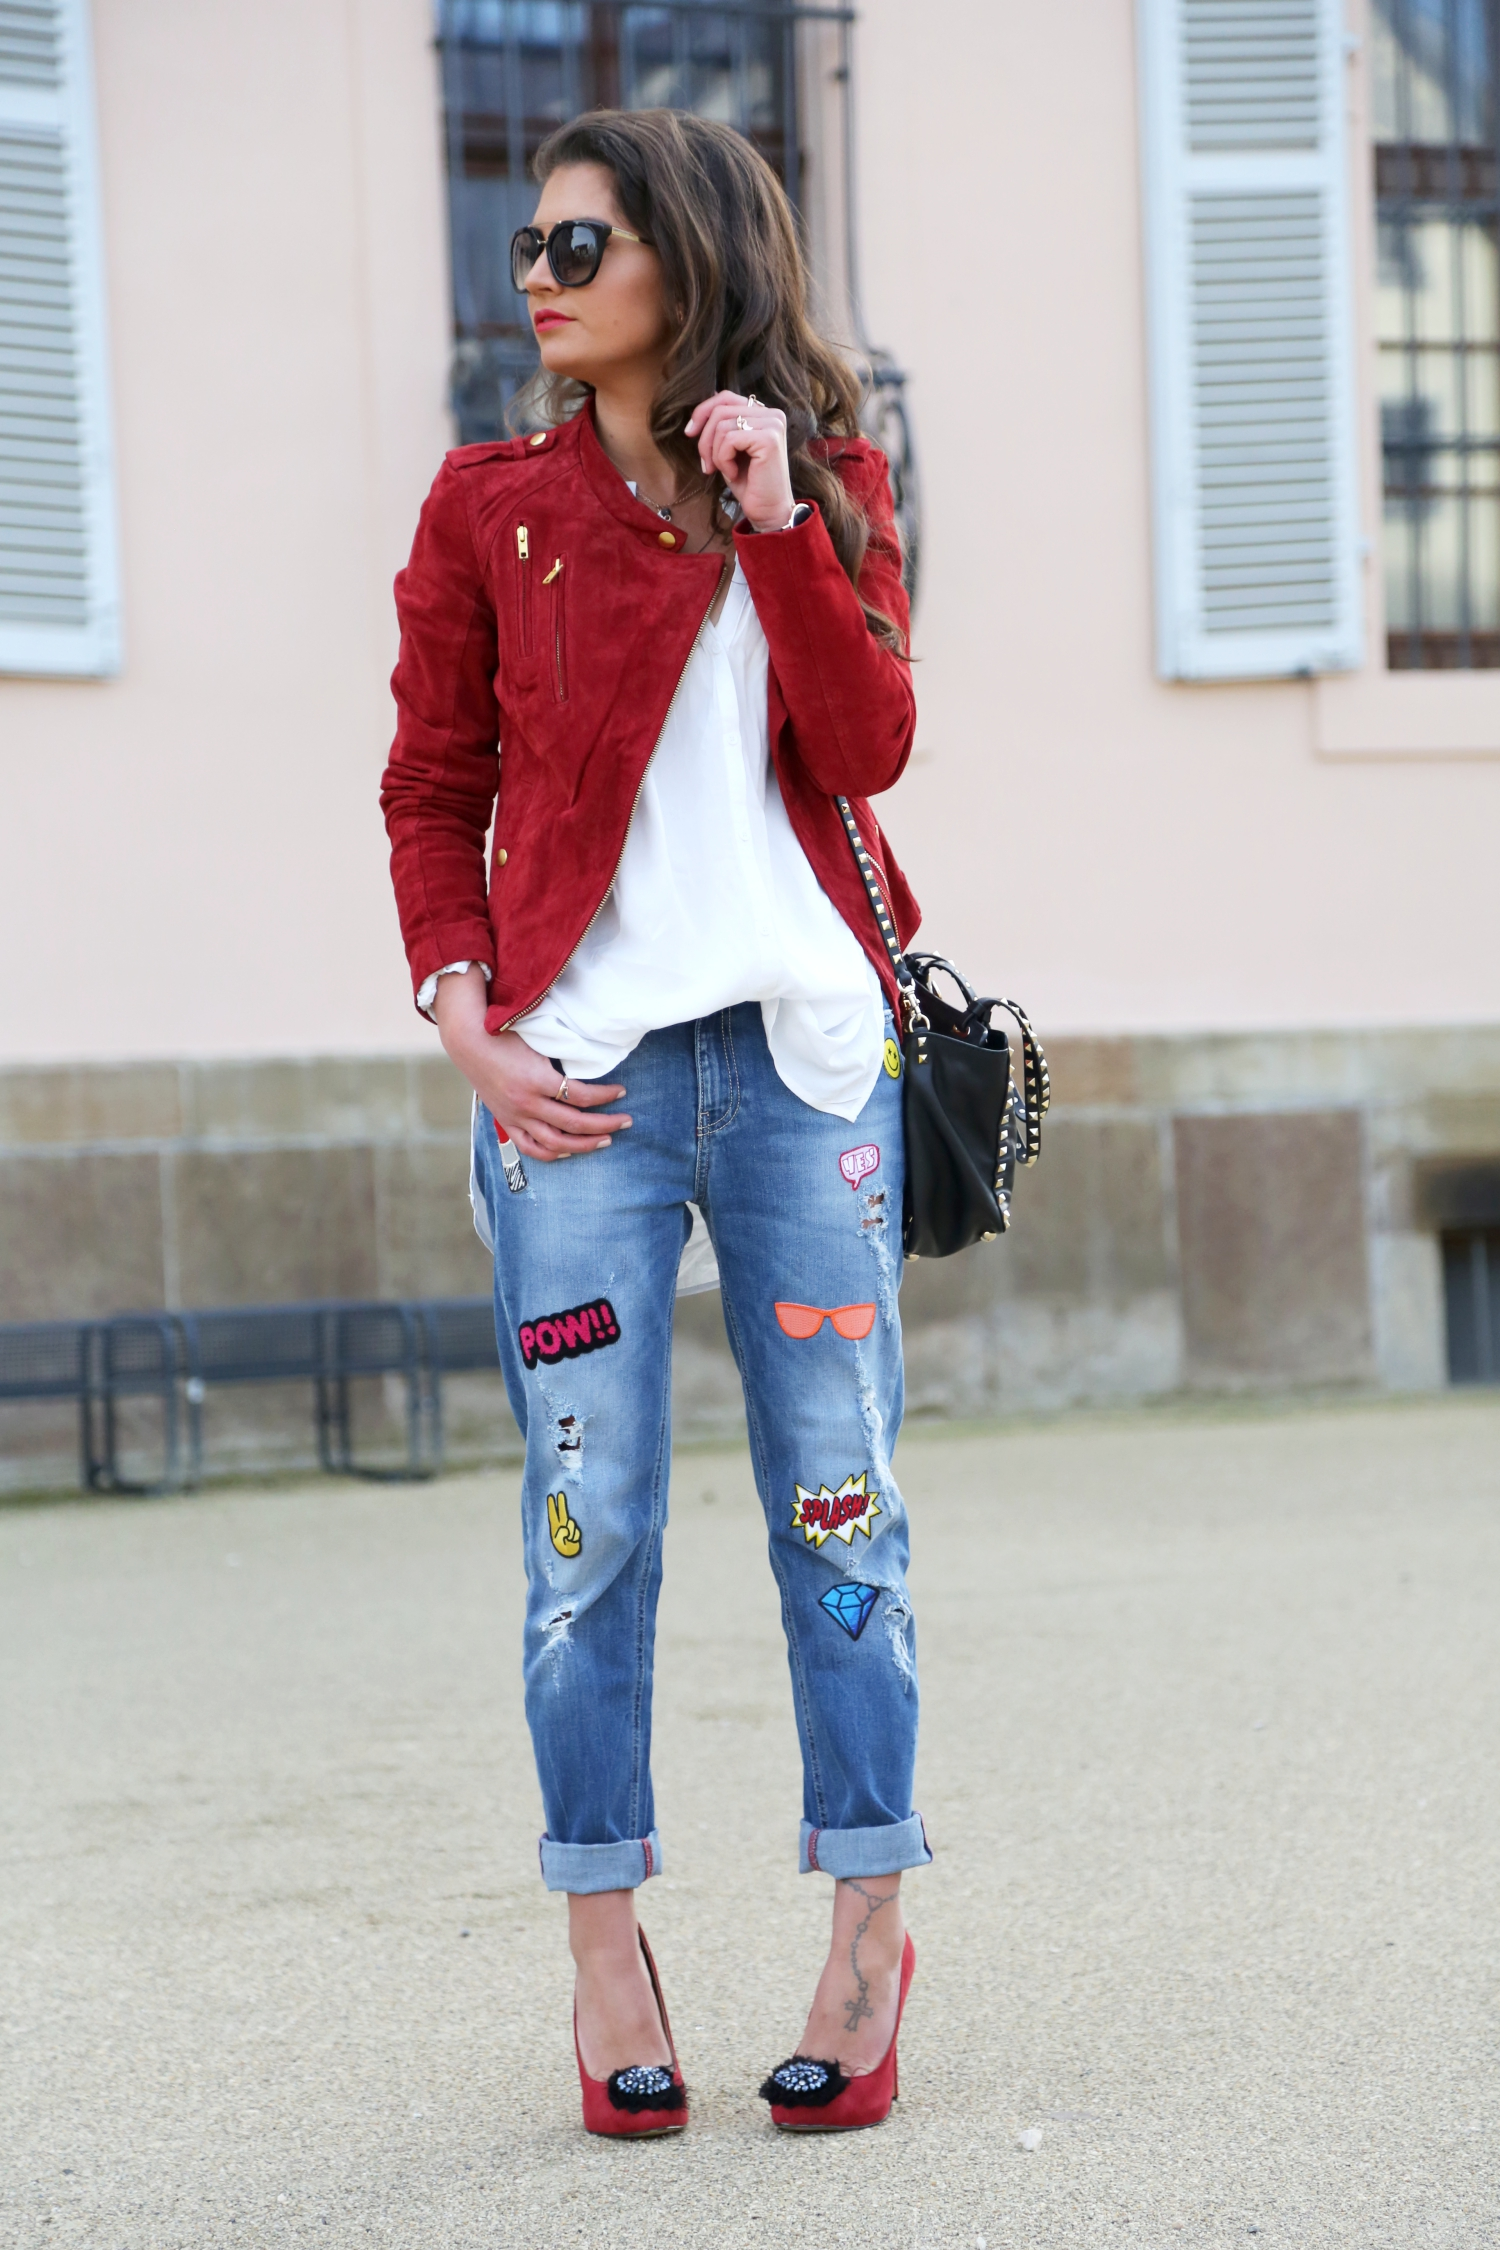 outfit-edited-jeans-red-leather-jacket